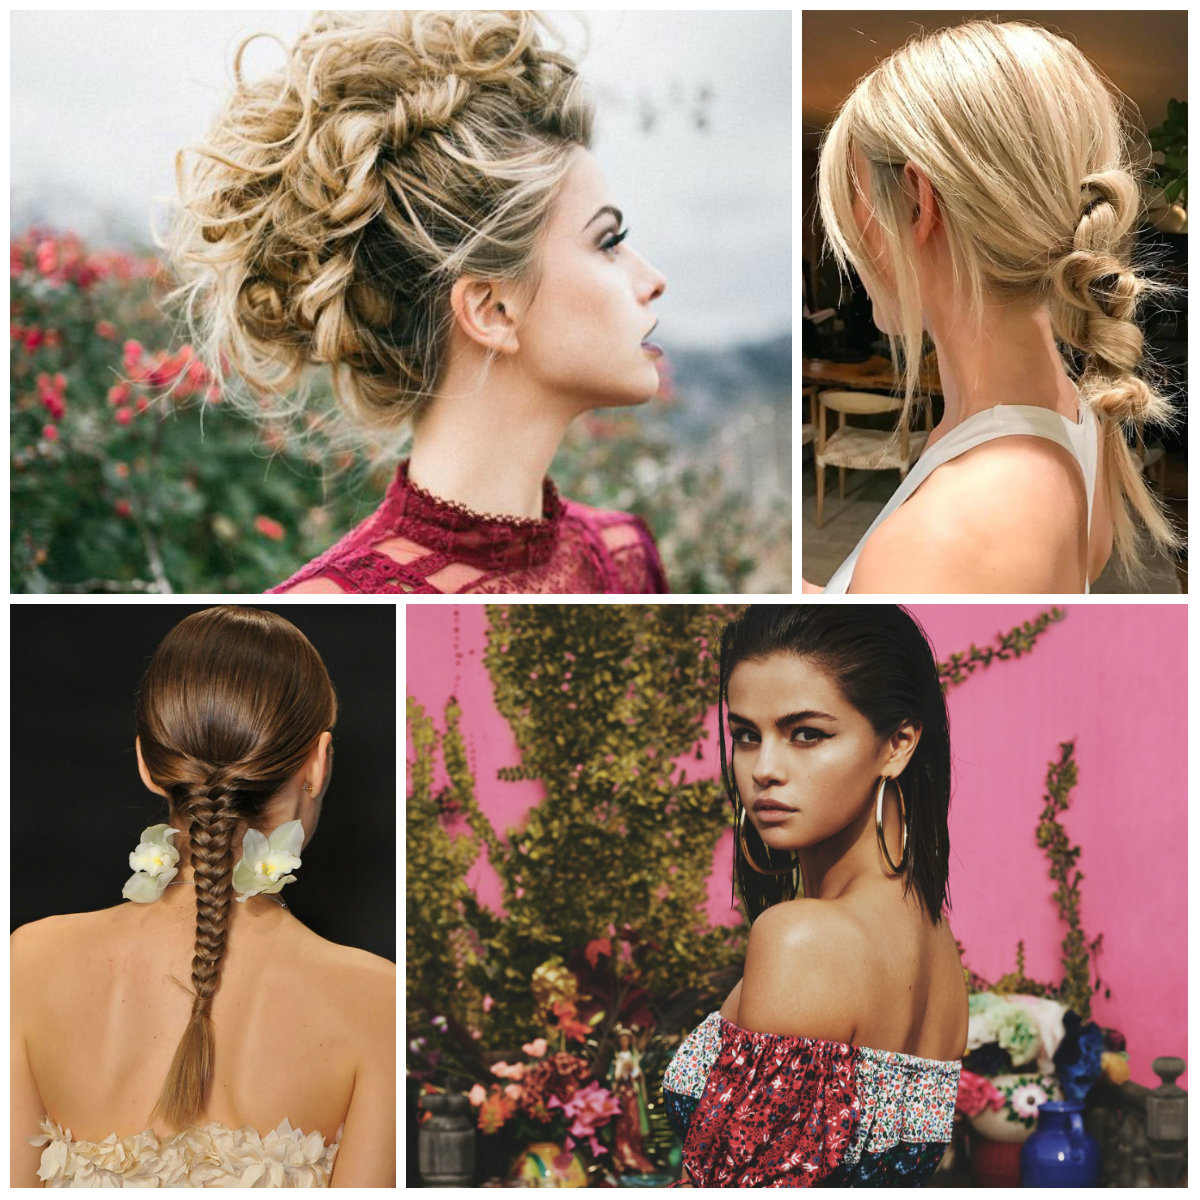 hairstyle-for-hot-days-